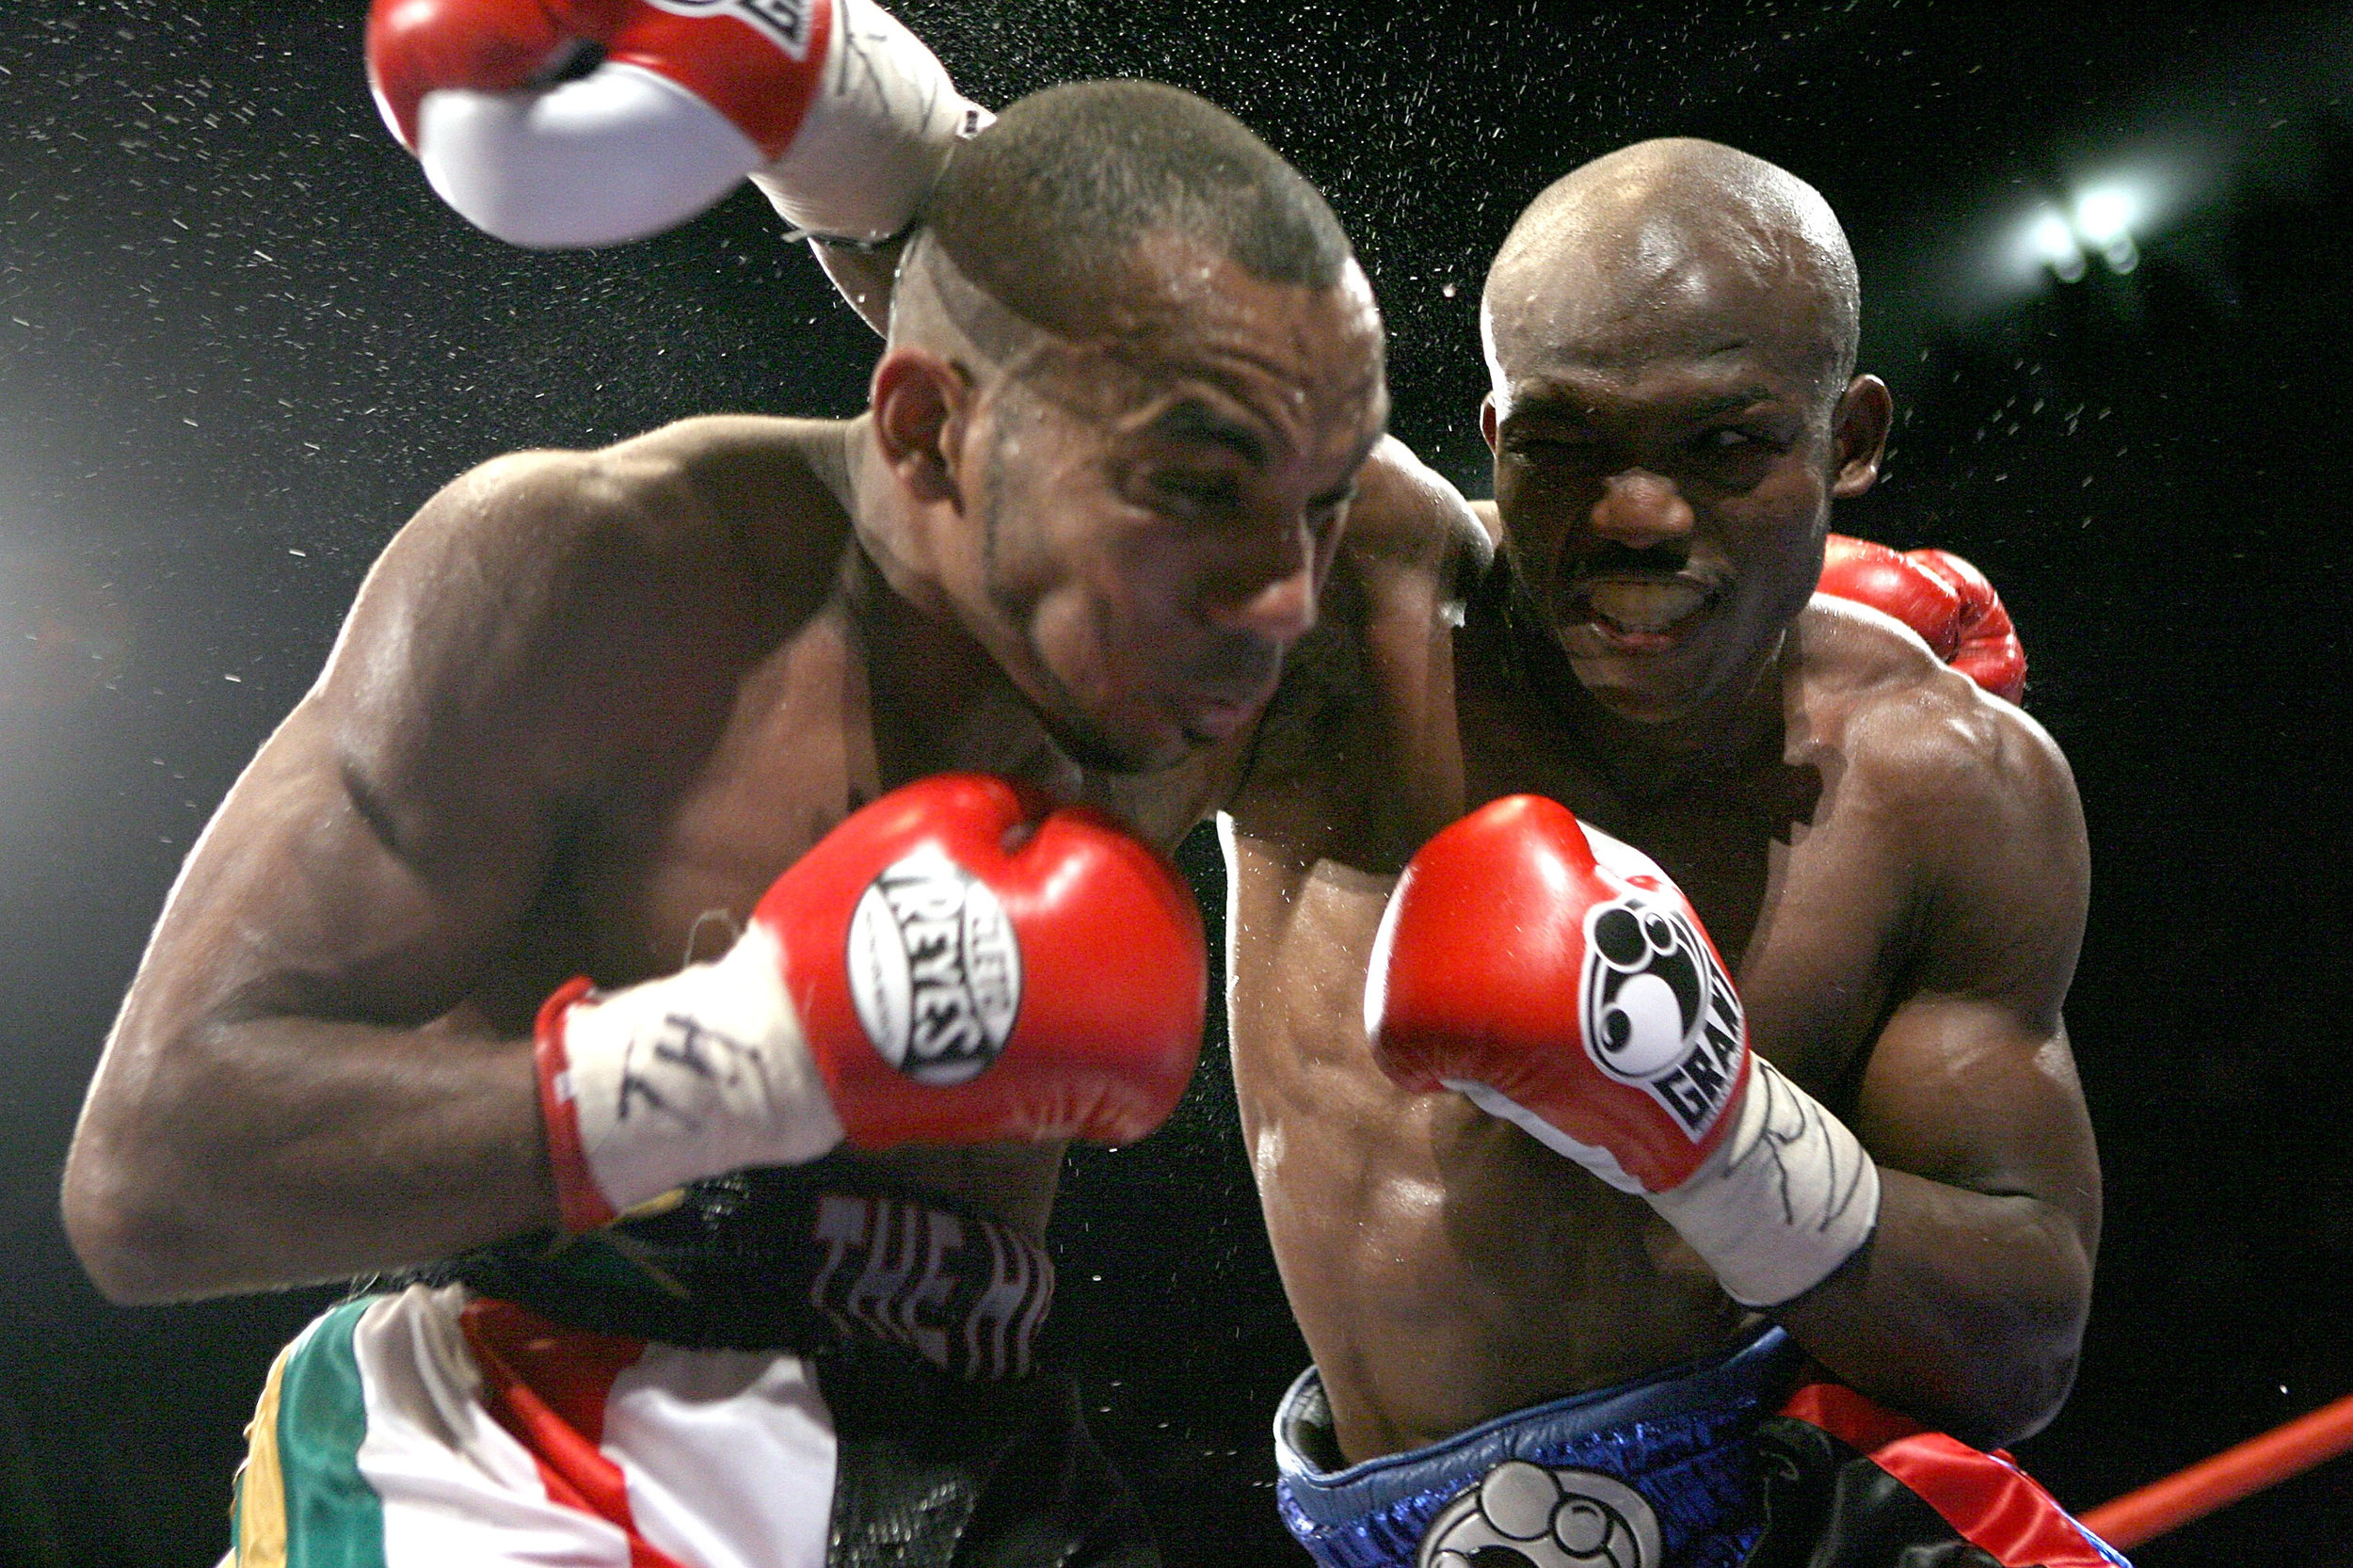 Timothy Bradley traveled to Junior Witter's hometown of Nottingham, England to win the WBC 140-pound championship. Photo: John Gigichi/Getty Images